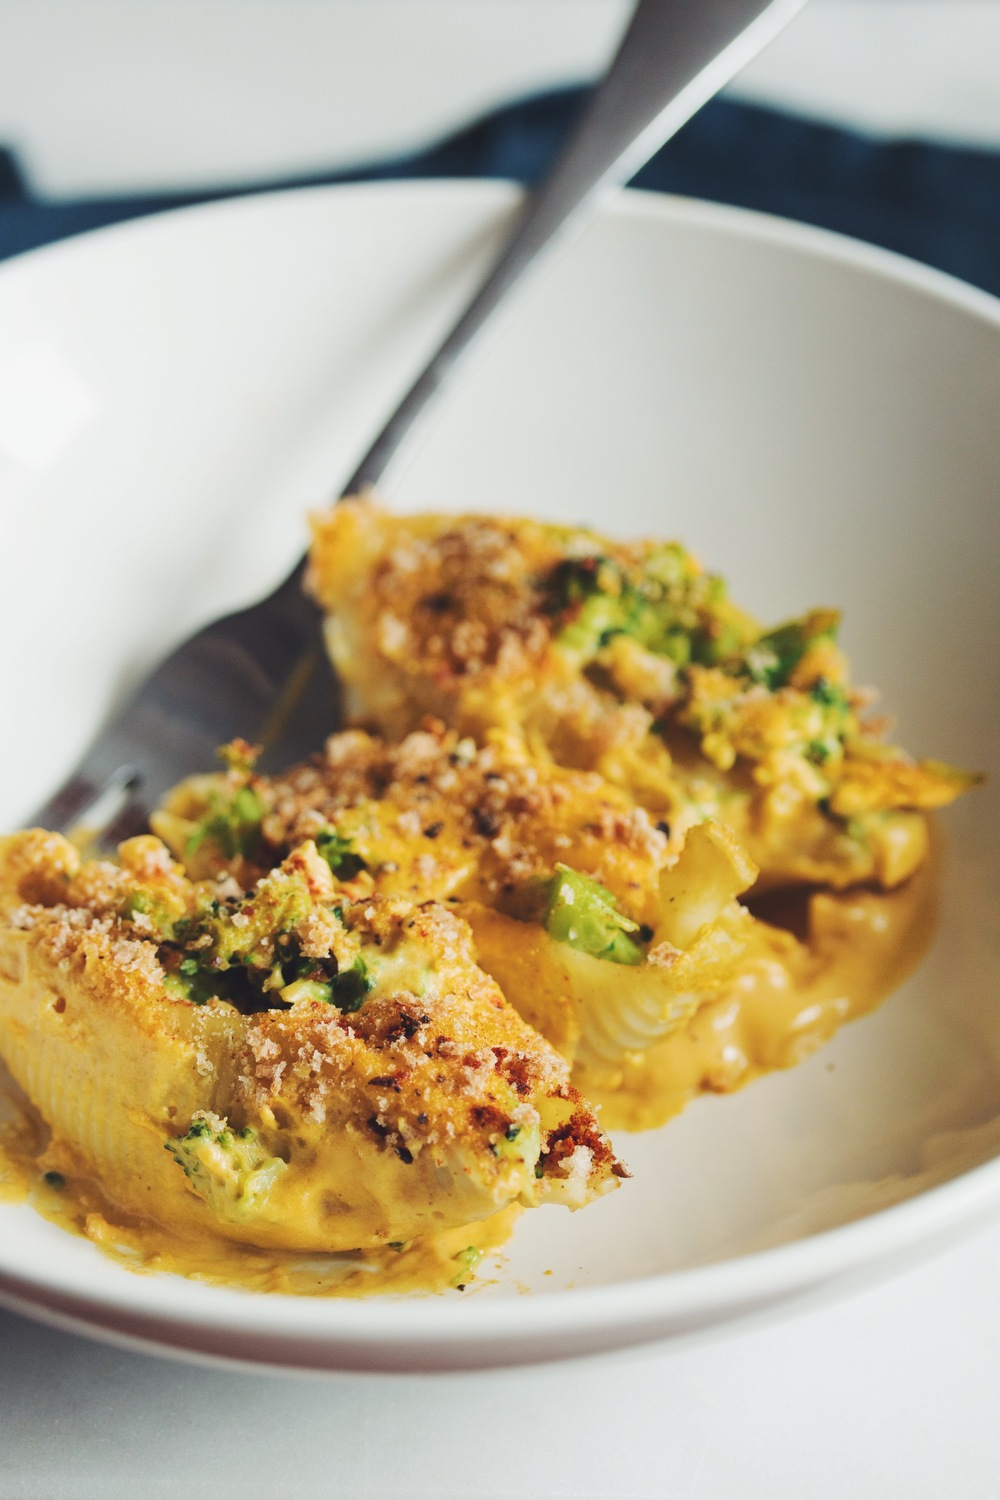 #vegan broccoli & cheese stuffed shells | RECIPE on hotforfoodblog.com